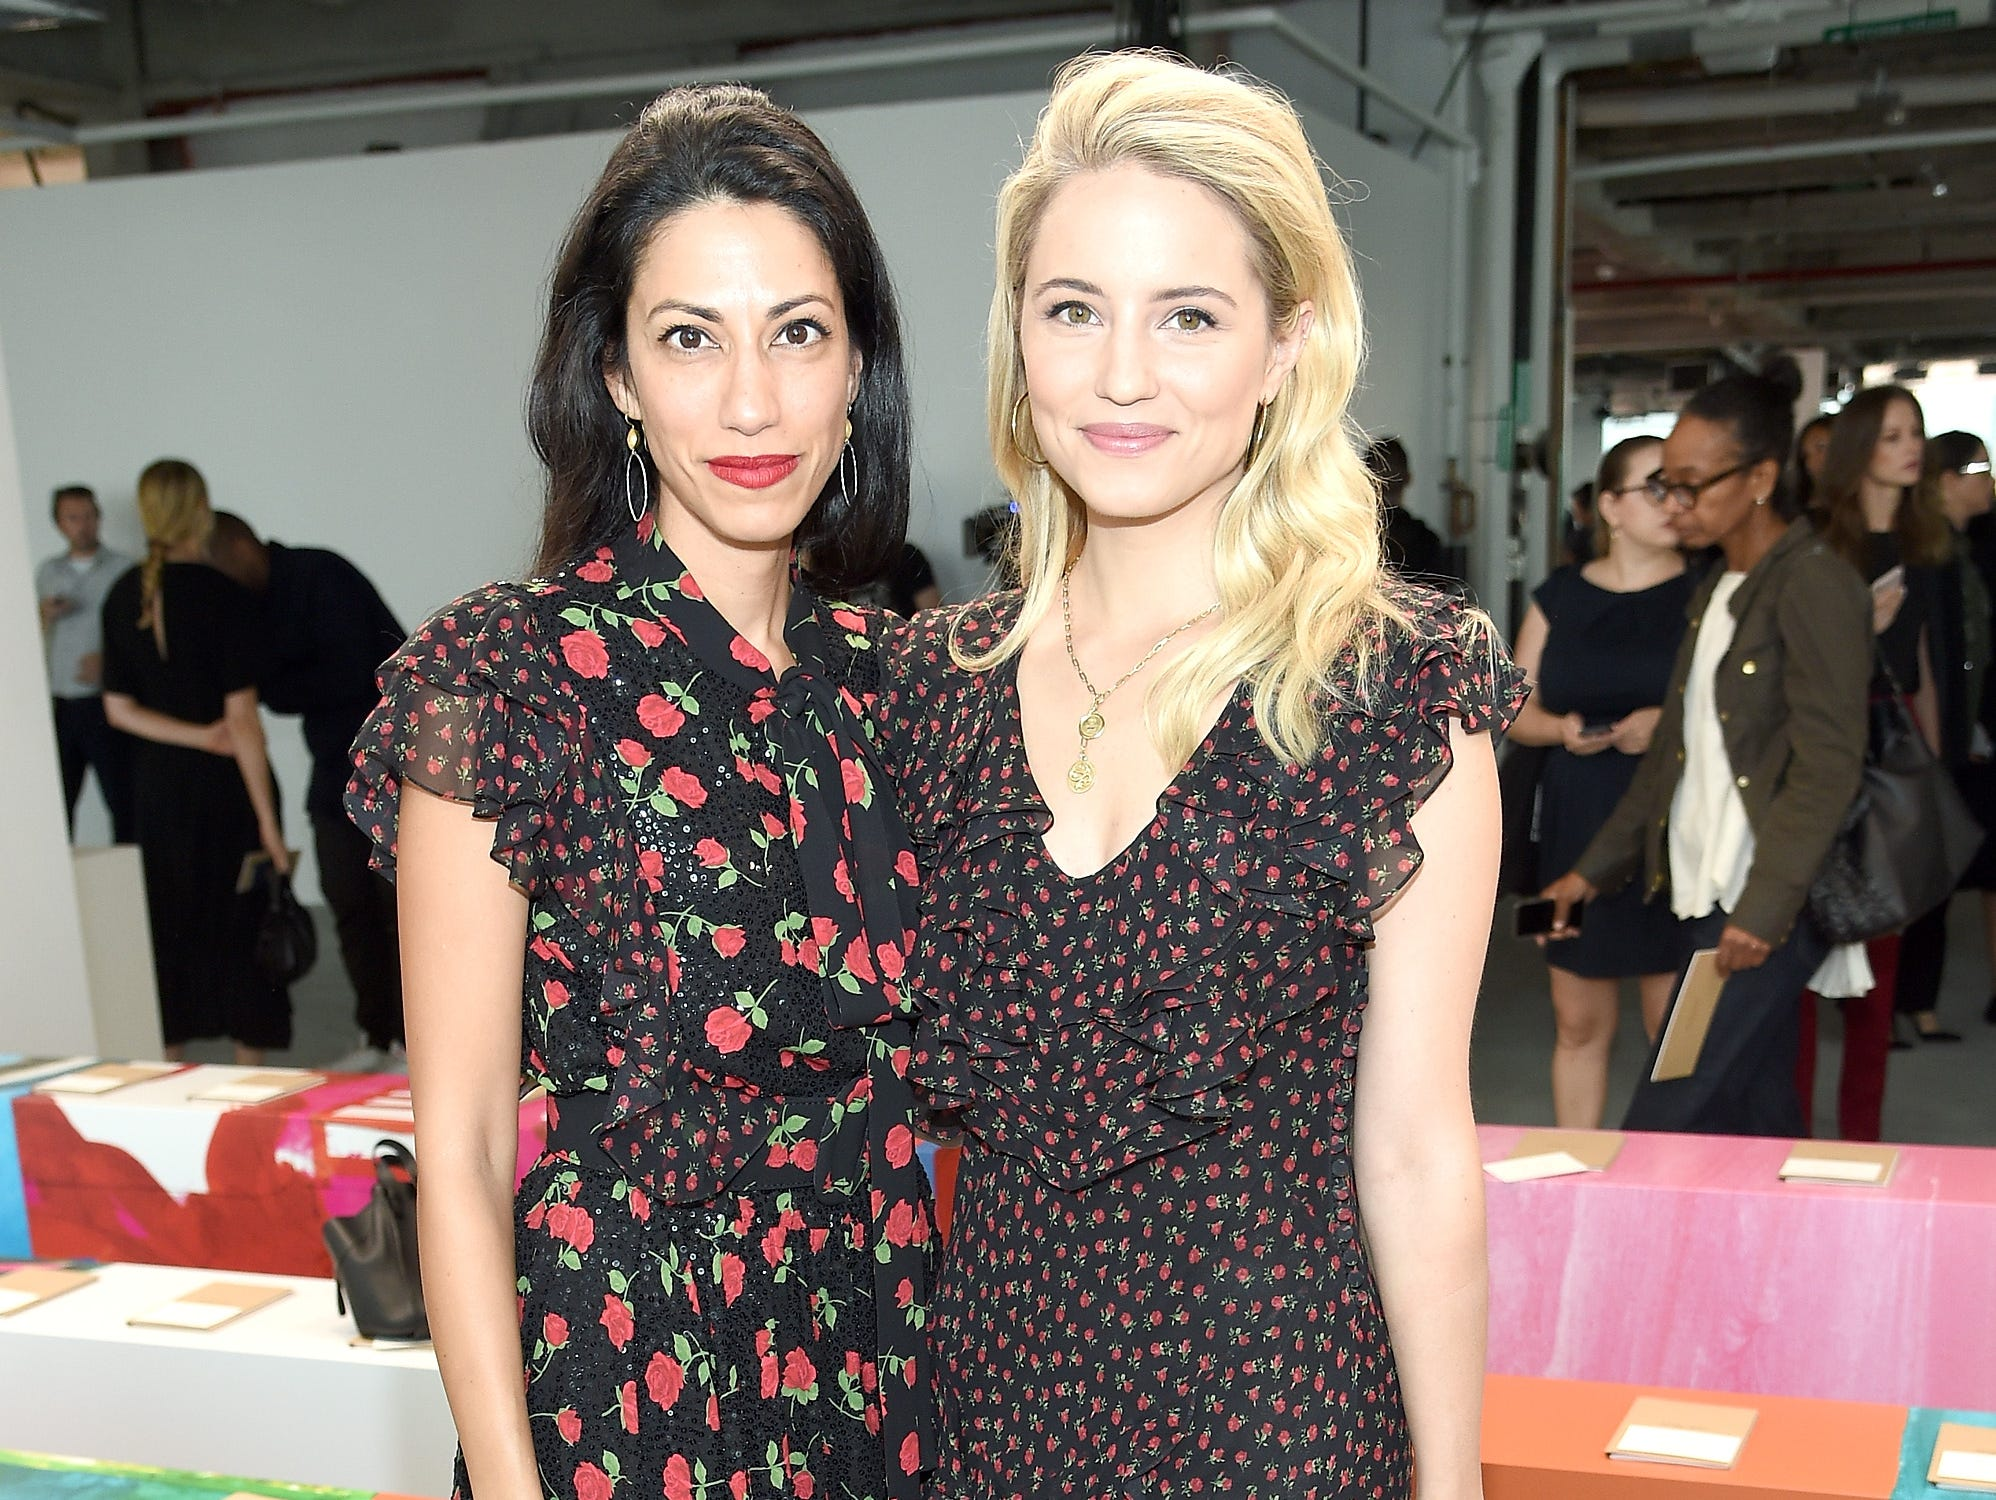 NEW YORK, NY - SEPTEMBER 12: Huma Abedin (L) and Diana Argon attend the Michael Kors Collection Spring 2019 Runway Show at Pier 17 on September 12, 2018 in New York City.  (Photo by Dimitrios Kambouris/Getty Images for Michael Kors) ORG XMIT: 775216953 ORIG FILE ID: 1032086104